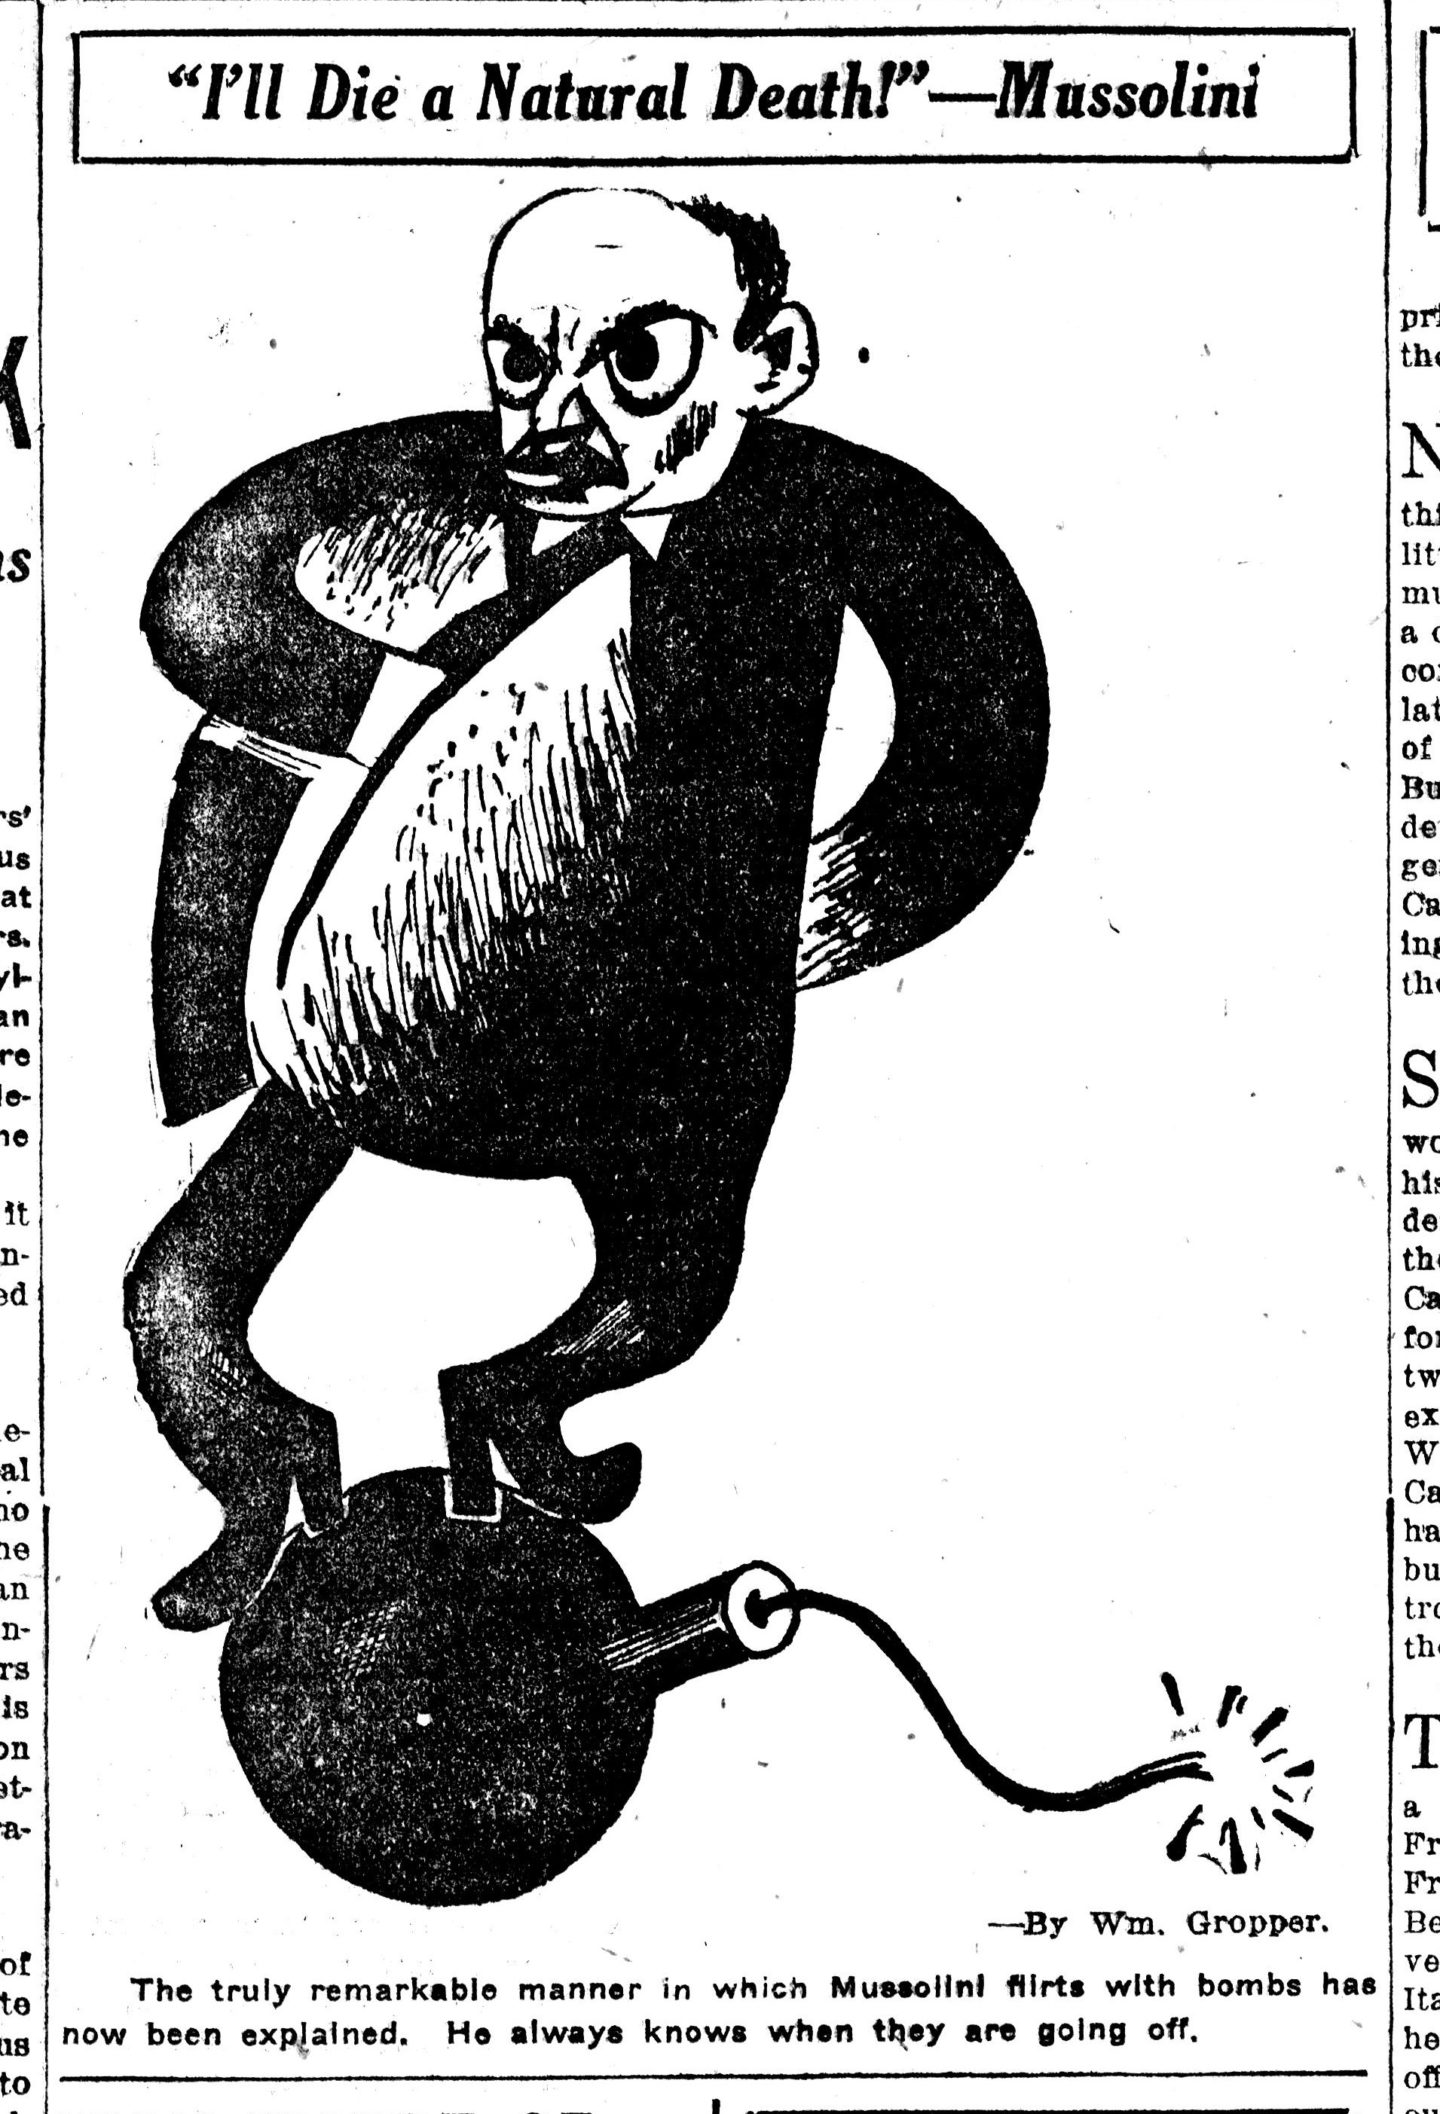 "William Gropper, karykatura z pisma ""Daily Worker"", lata 20. XX wieku / caricature published in ""Daily Worker"", 1920's"